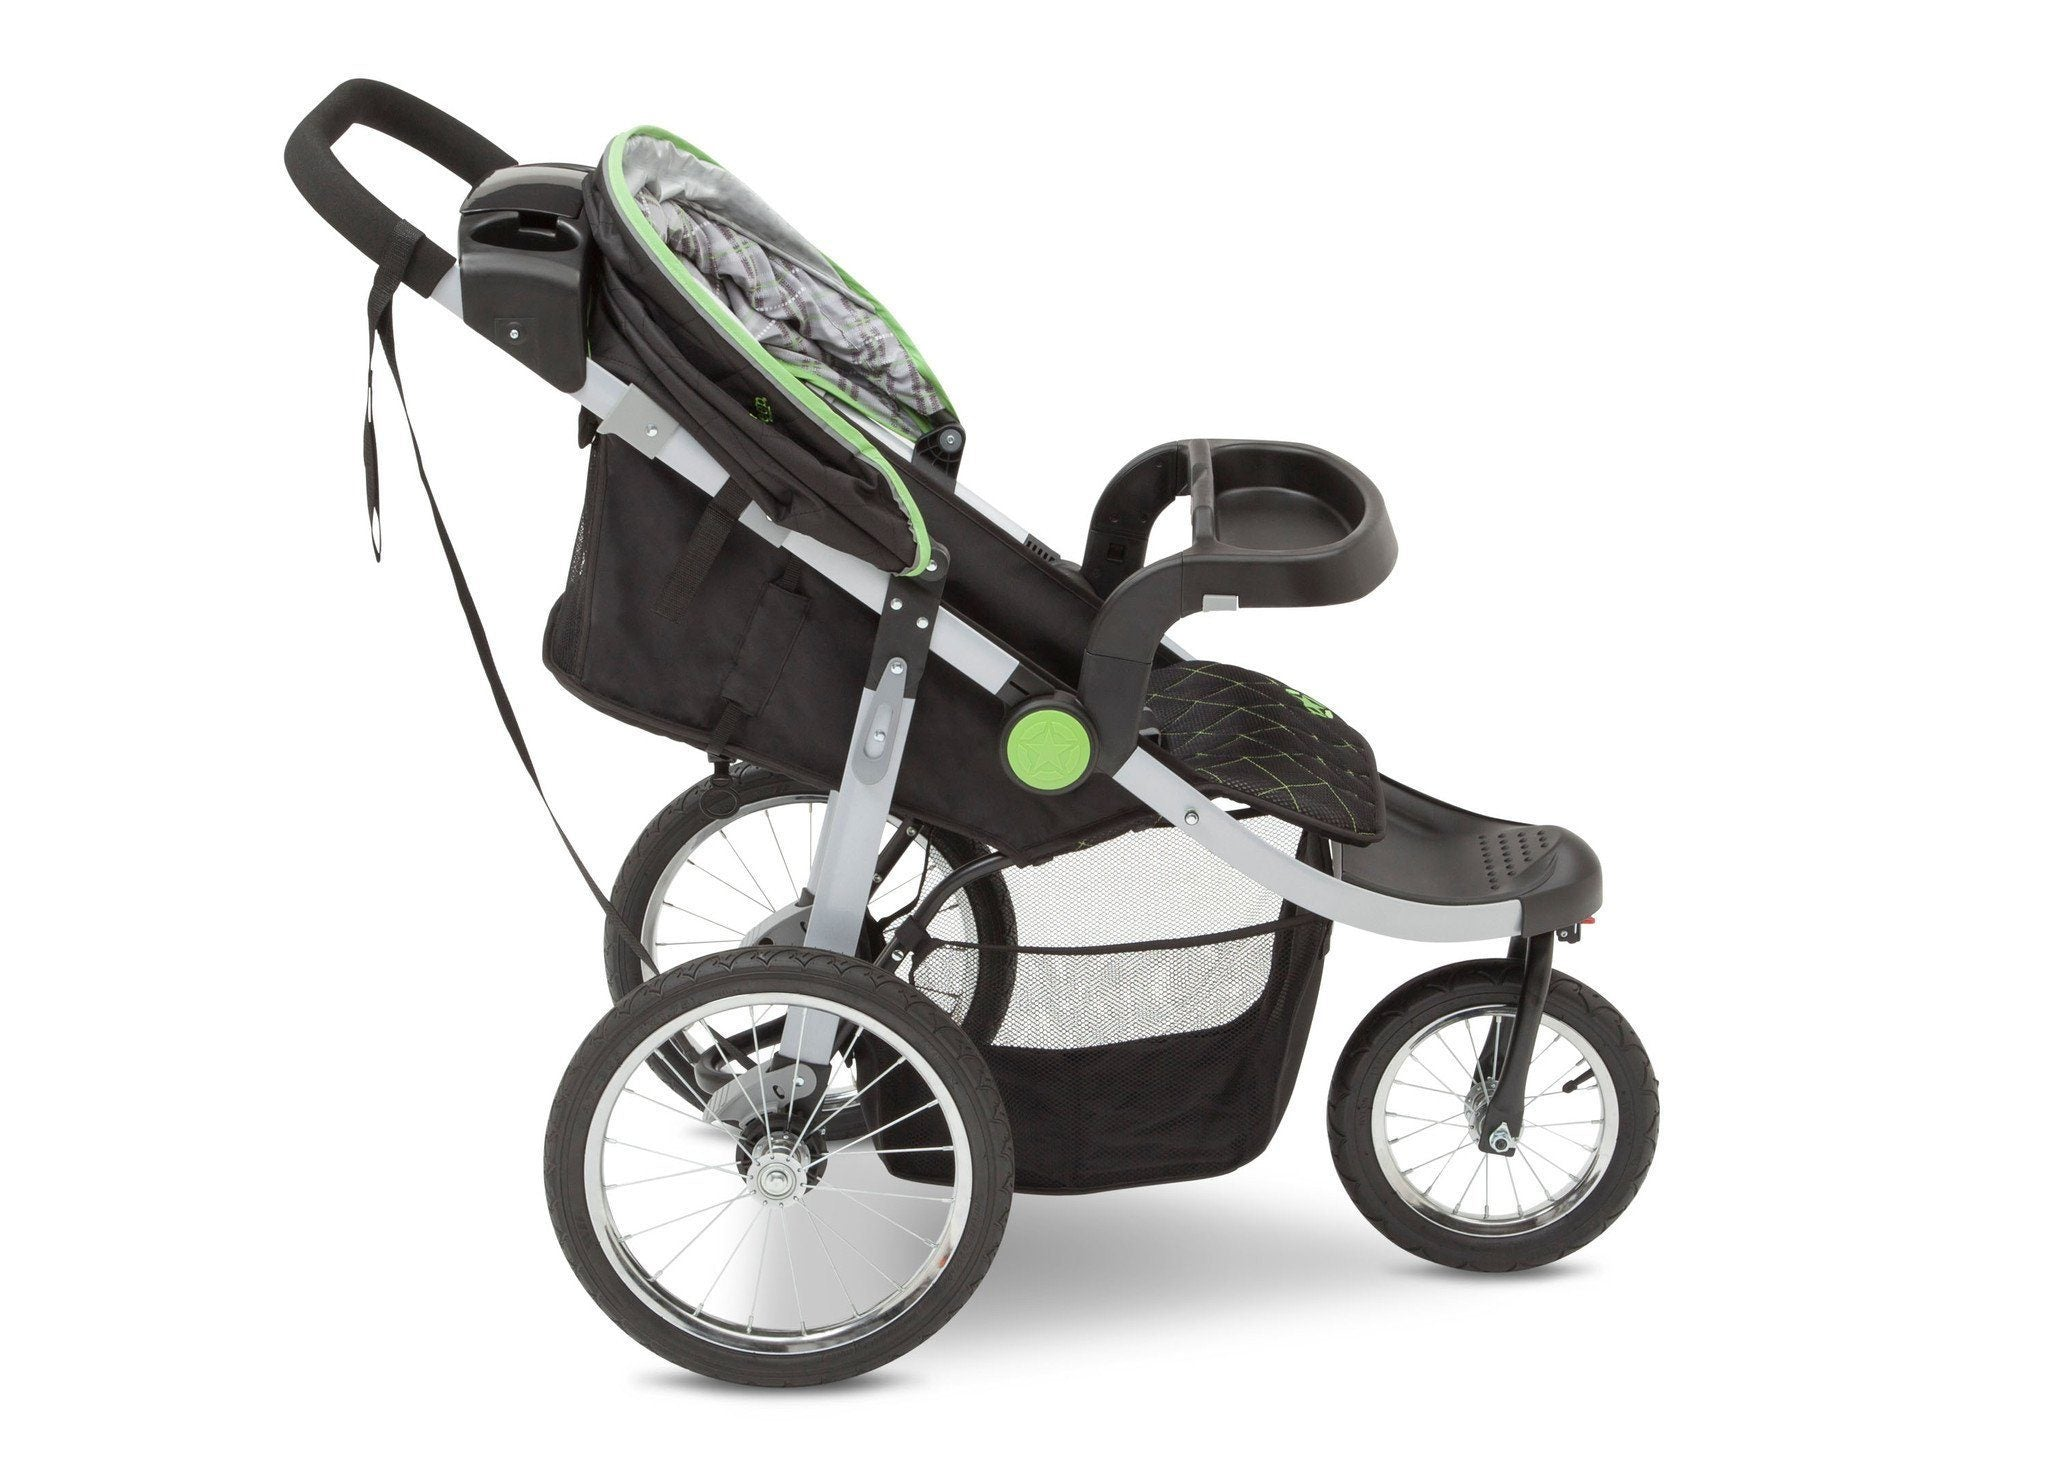 Delta Children J is for Jeep Brand Fairway (340) Cross Country All Terrain Jogging Stroller Right Side View, with Canopy, Child Tray f3f